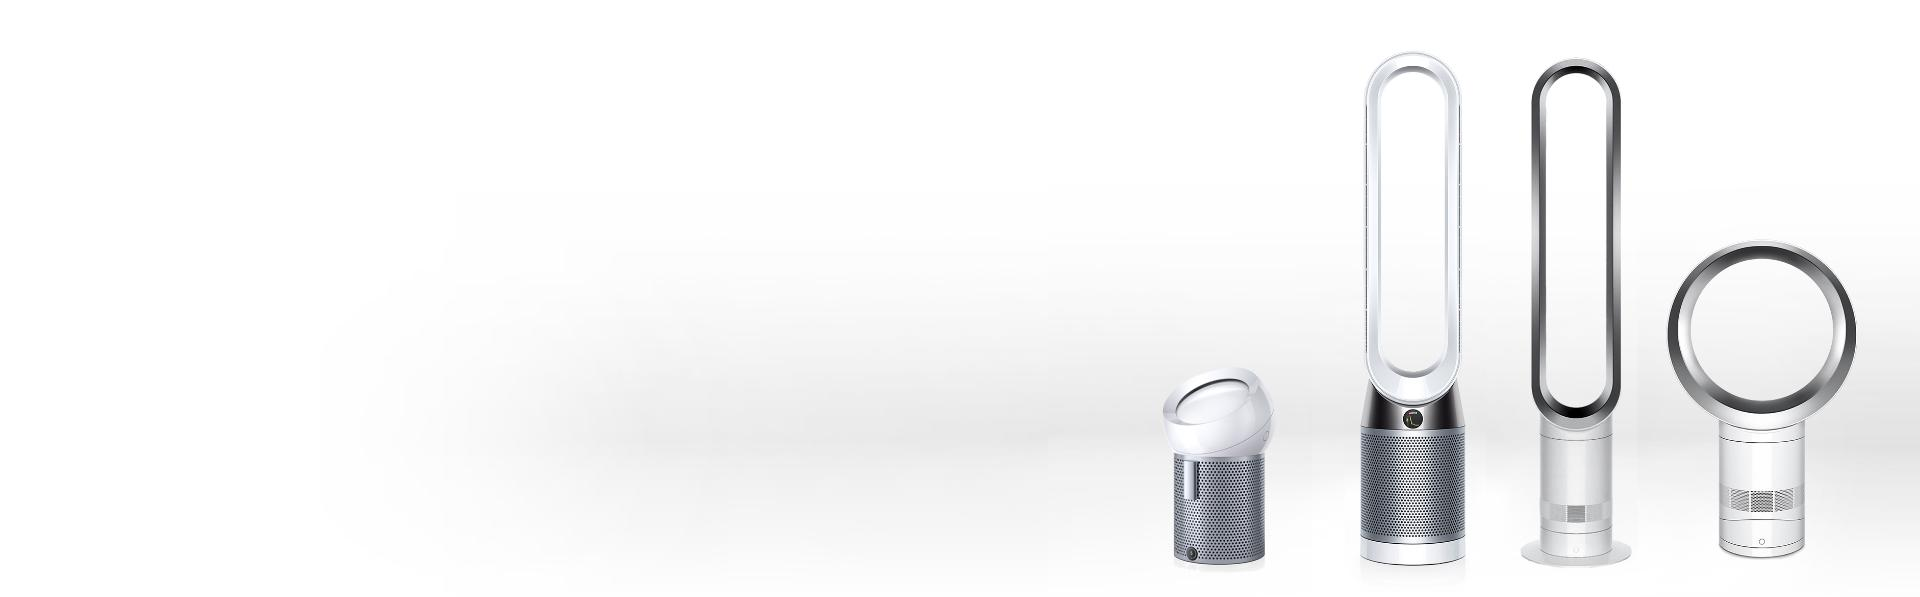 Dyson purifiers and fans